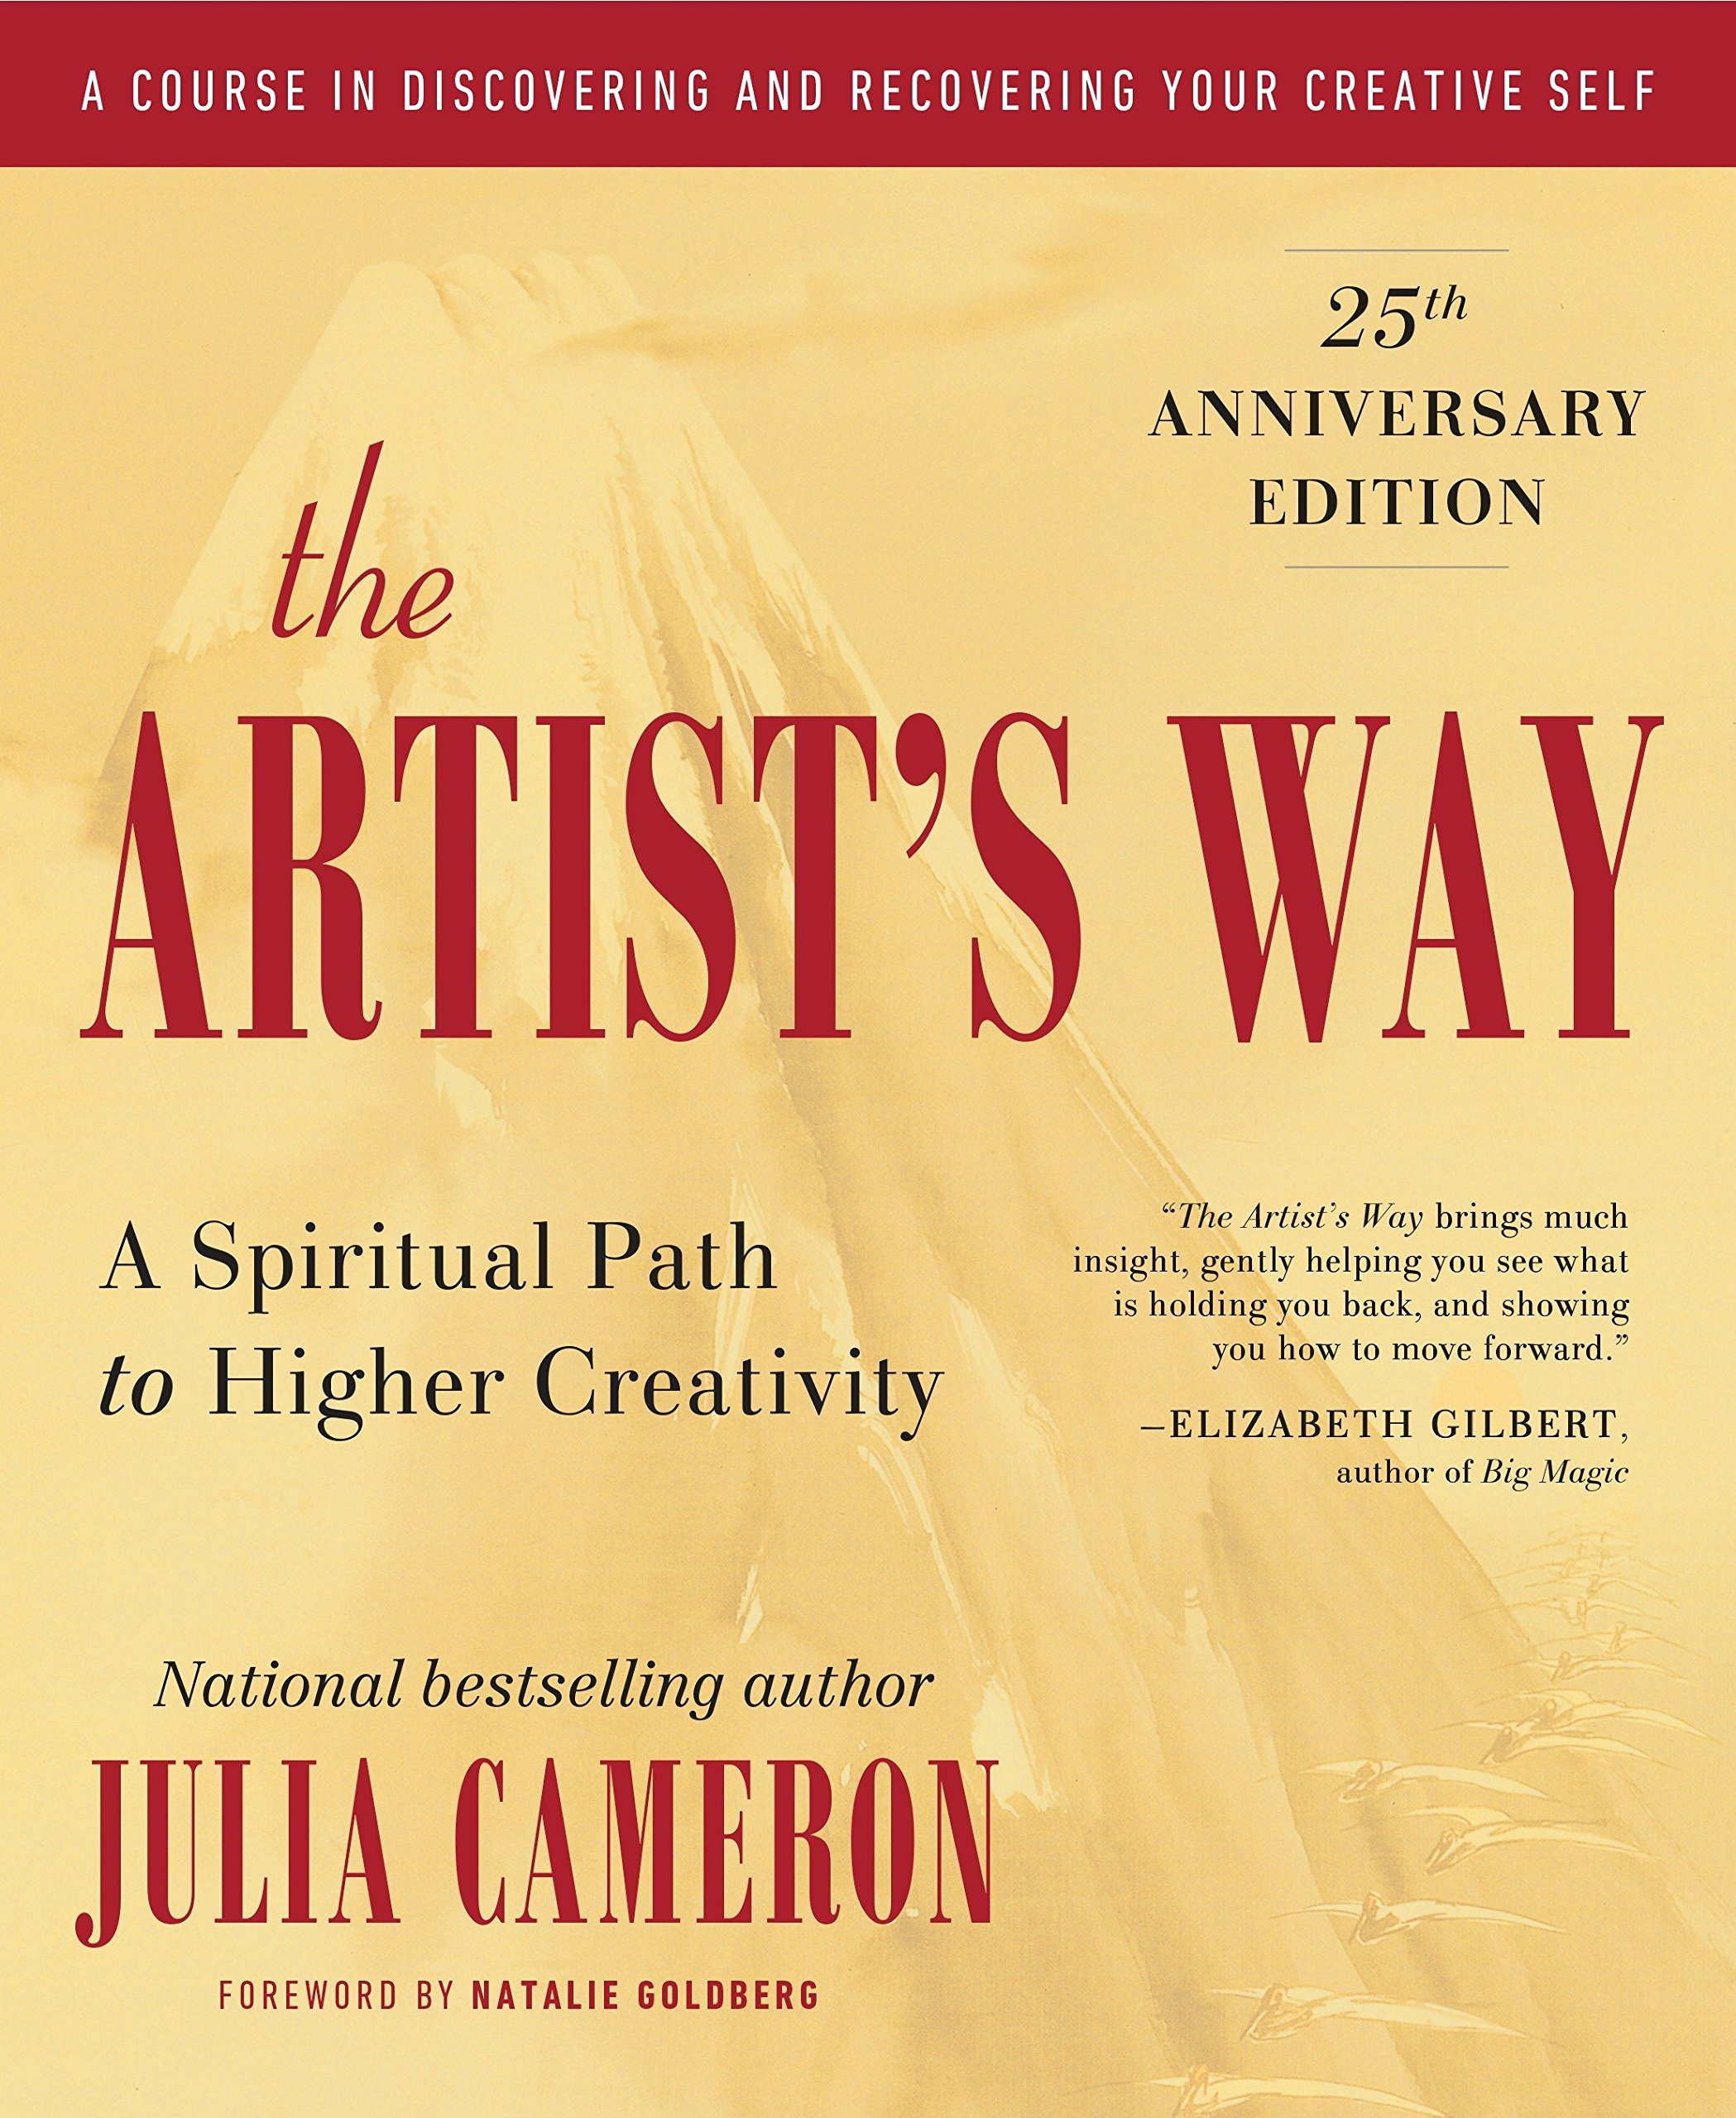 The Artists Way book cover